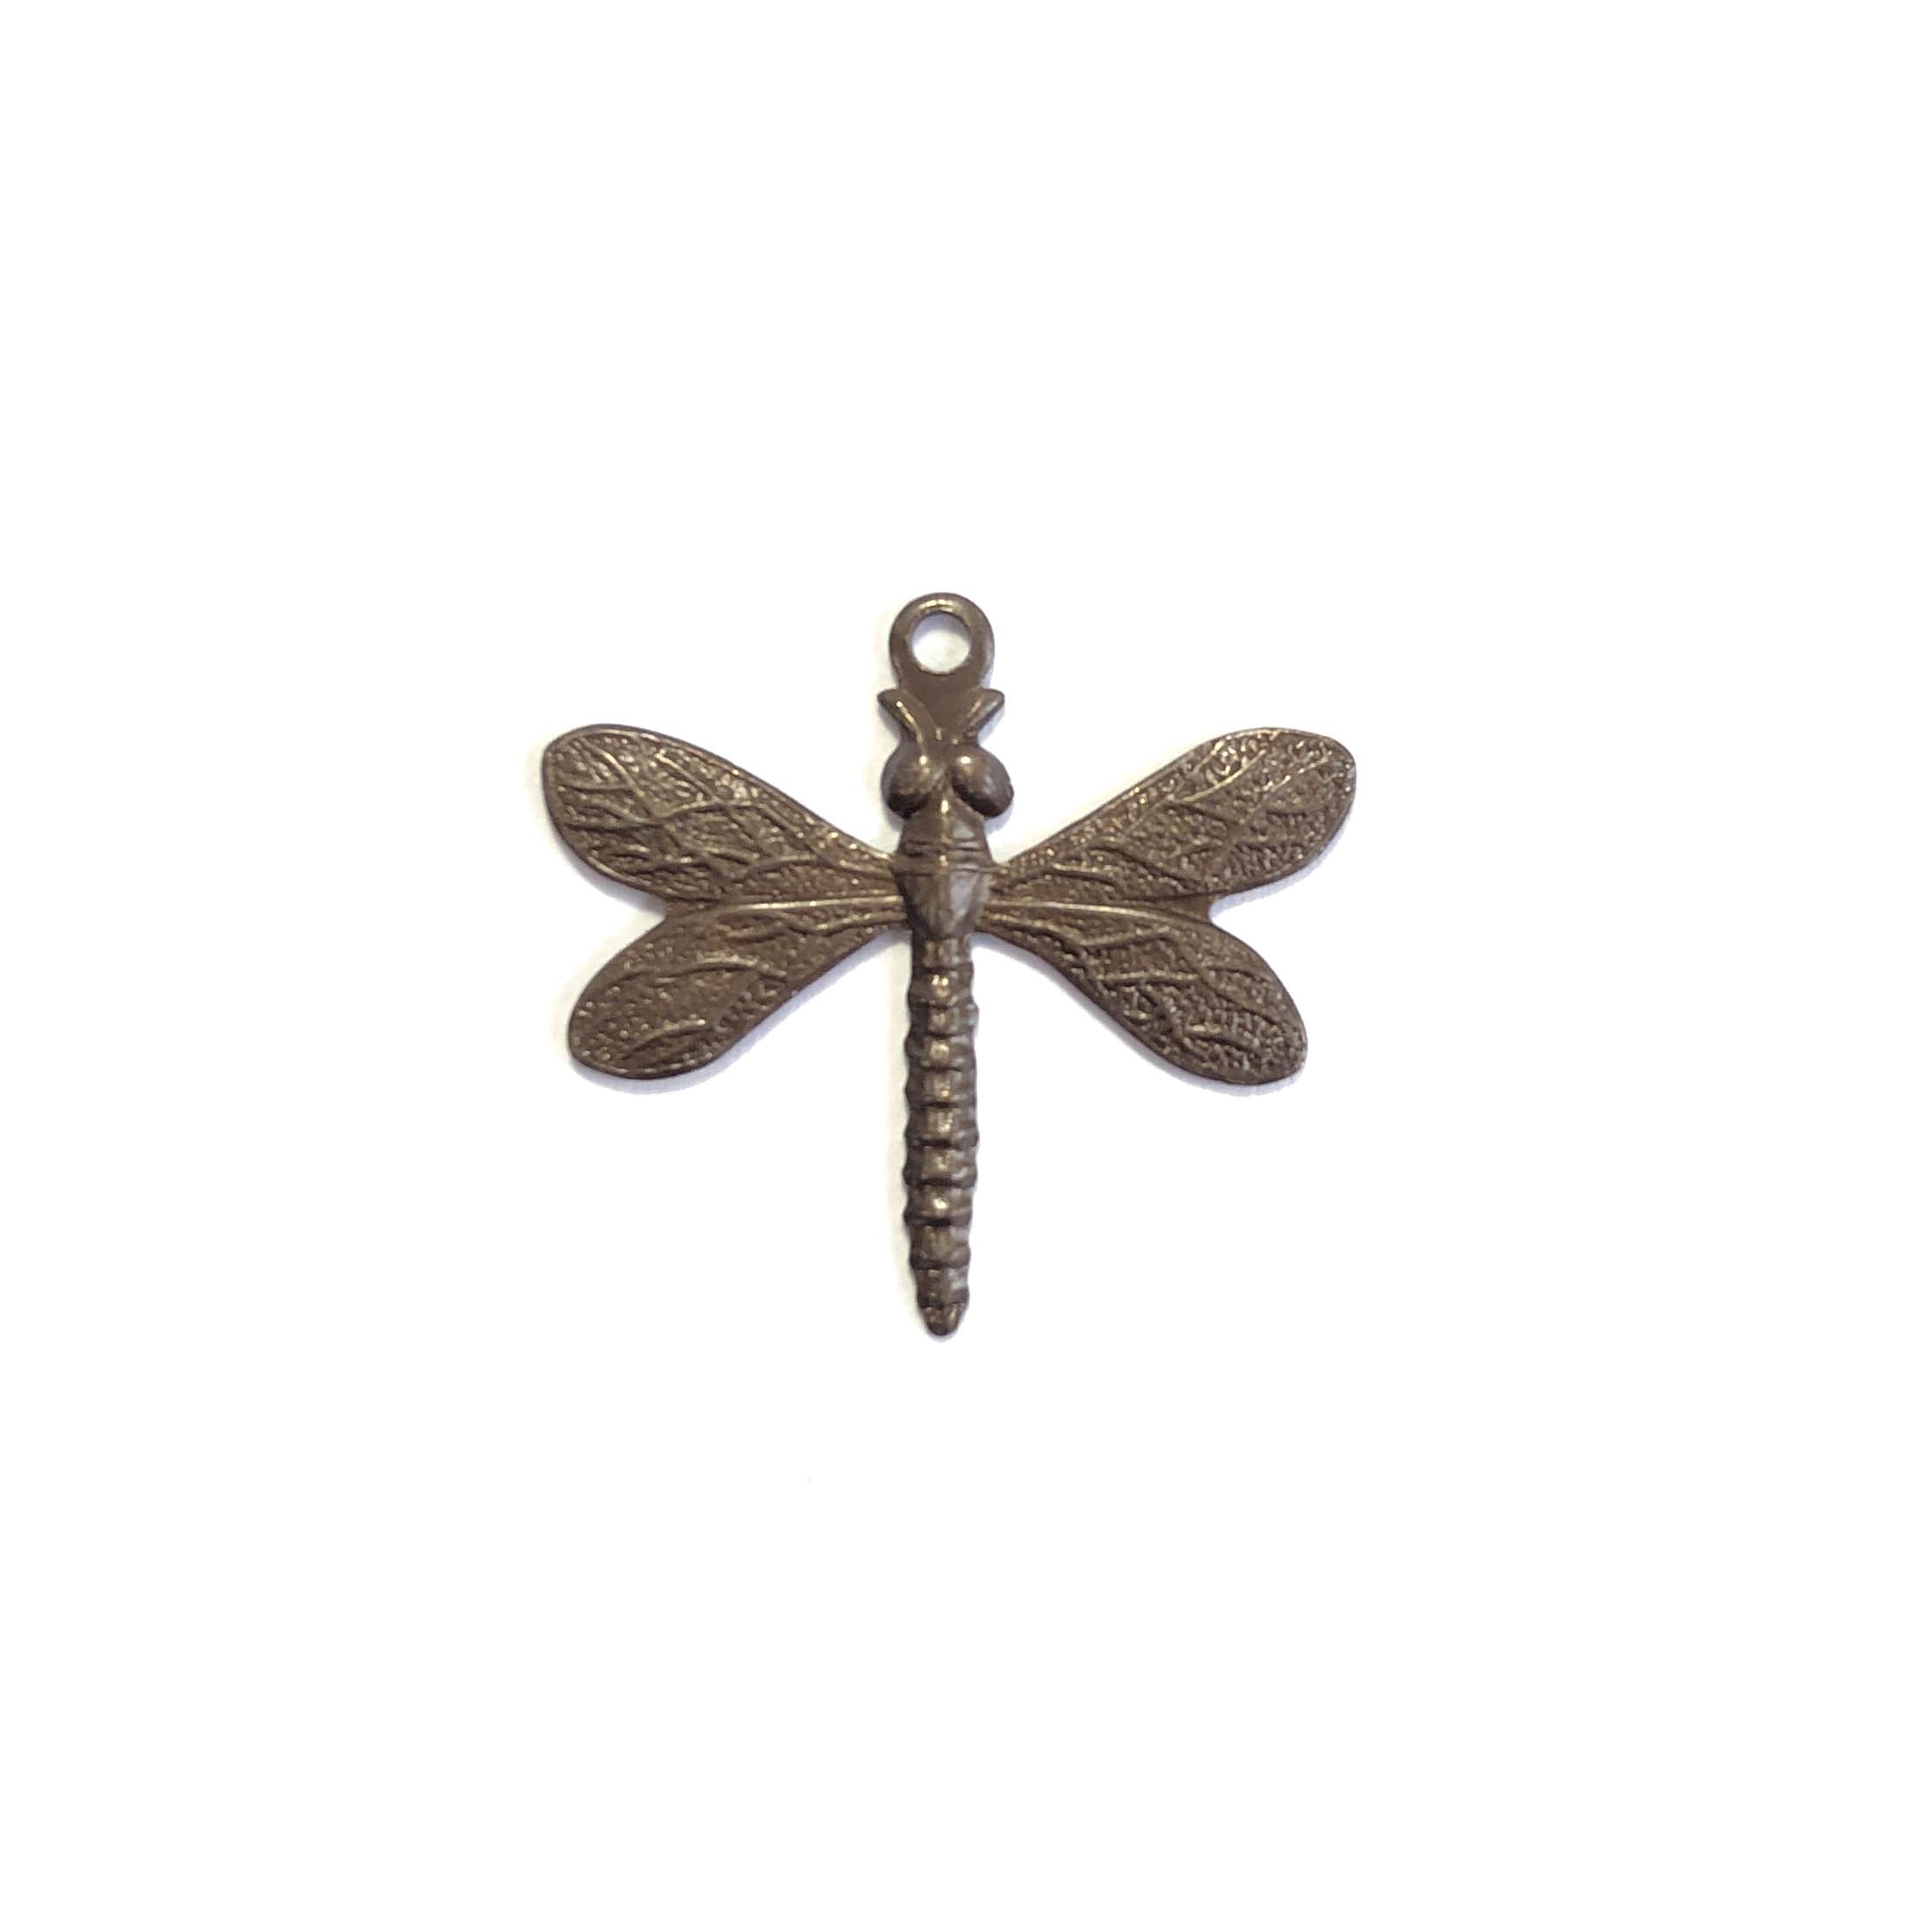 dragonfly charm, choxie, chocolate brass, dragonfly, charm, brass charm, US made, nickel free, 20x21mm, bug charm, jewelry making, dragonfly jewelry, vintage supplies, jewelry supplies, jewelry findings, brass stamping, B'sue Boutiques, insect, 0138